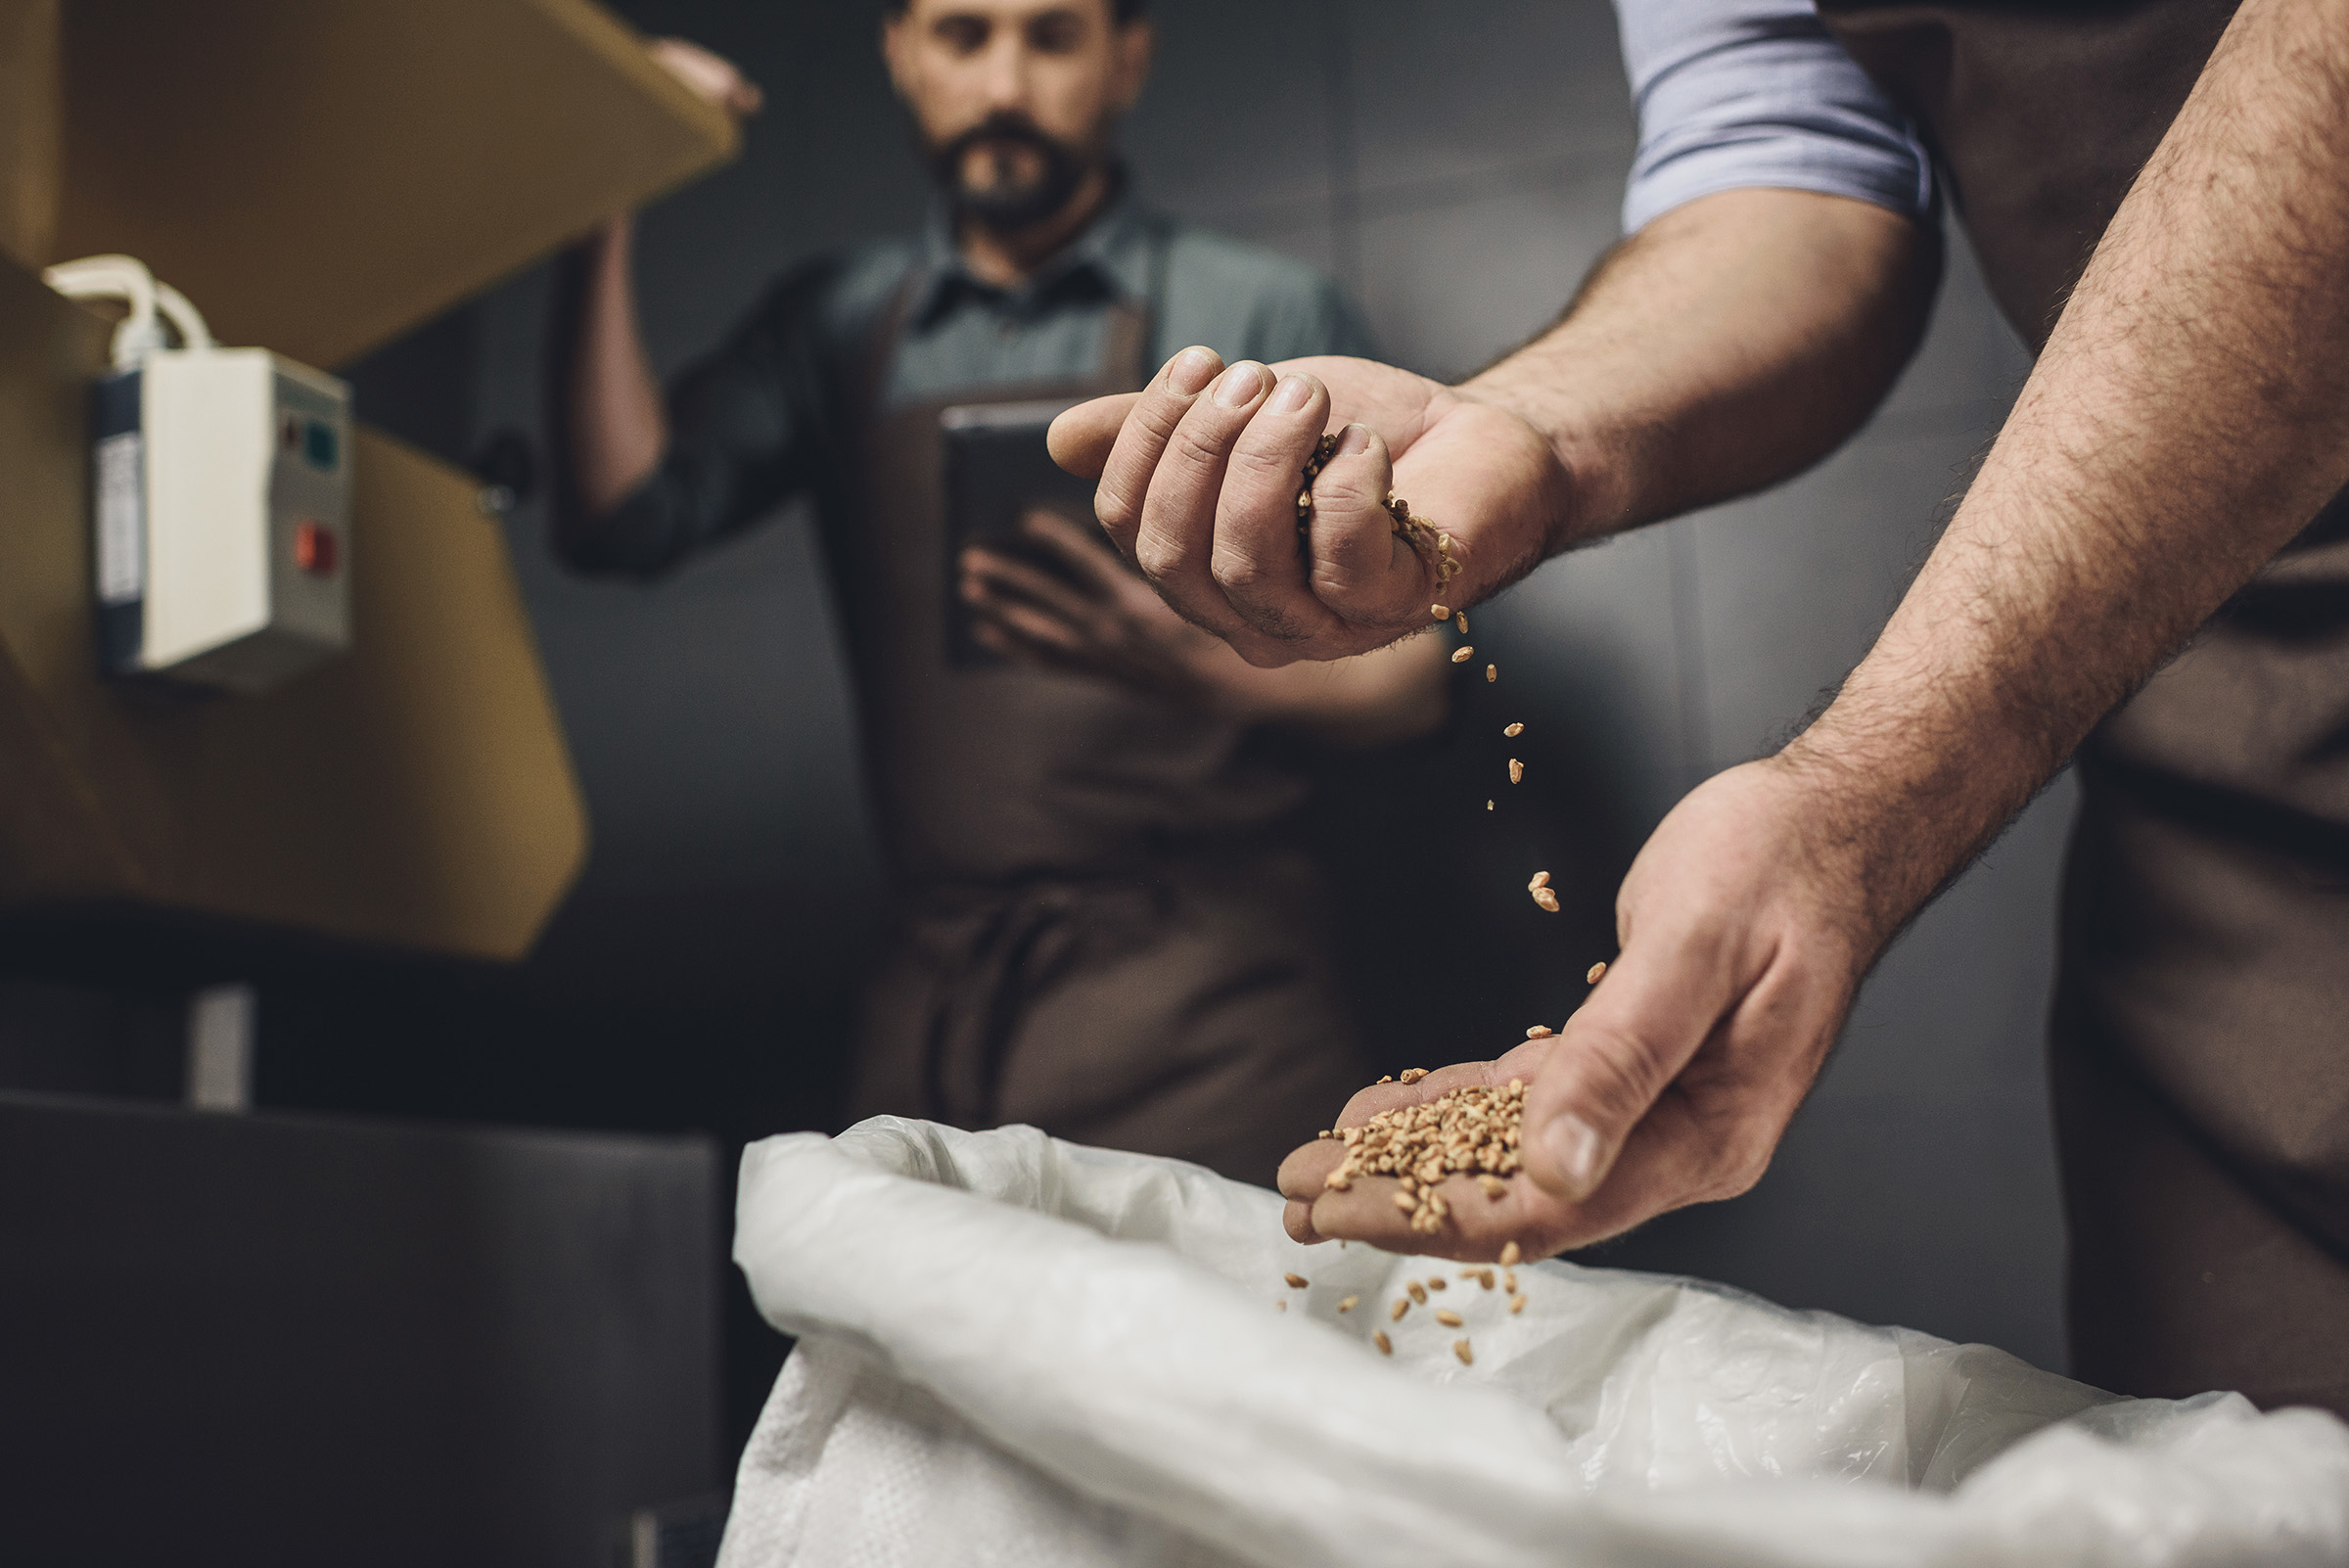 Brewer filtering grains in his hand